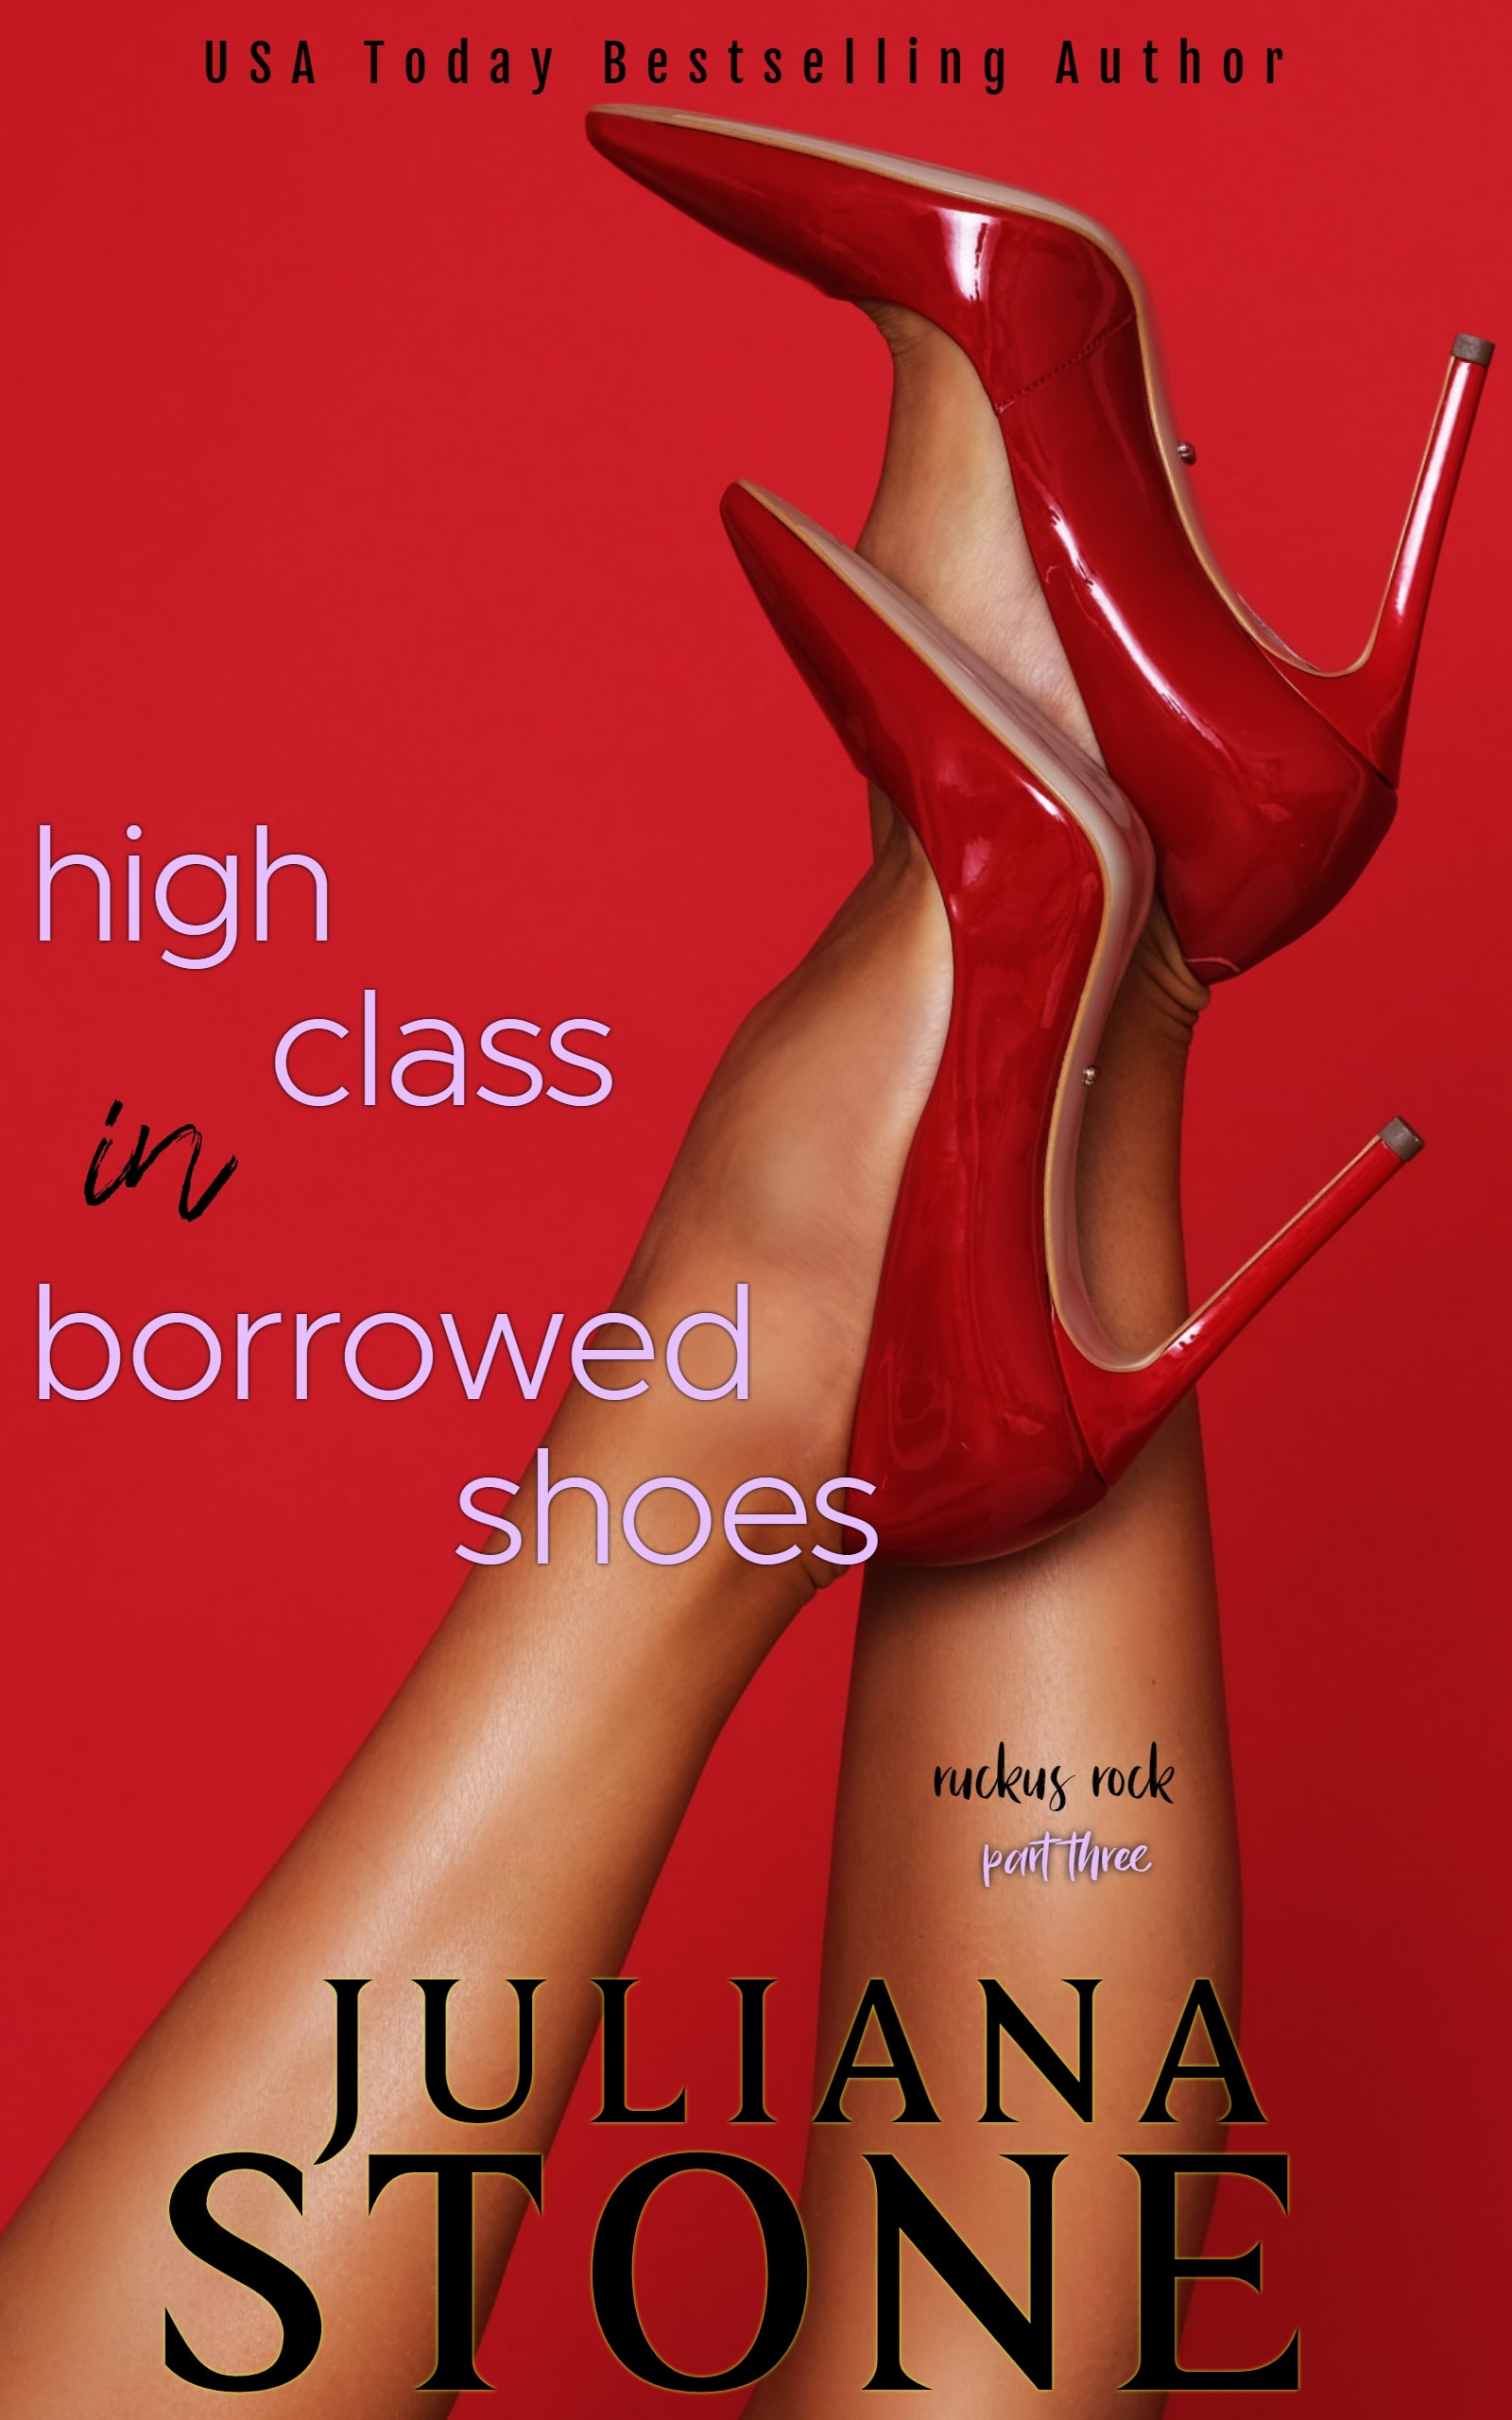 High Class In Borrowed Shoes-Part Two by Juliana Stone